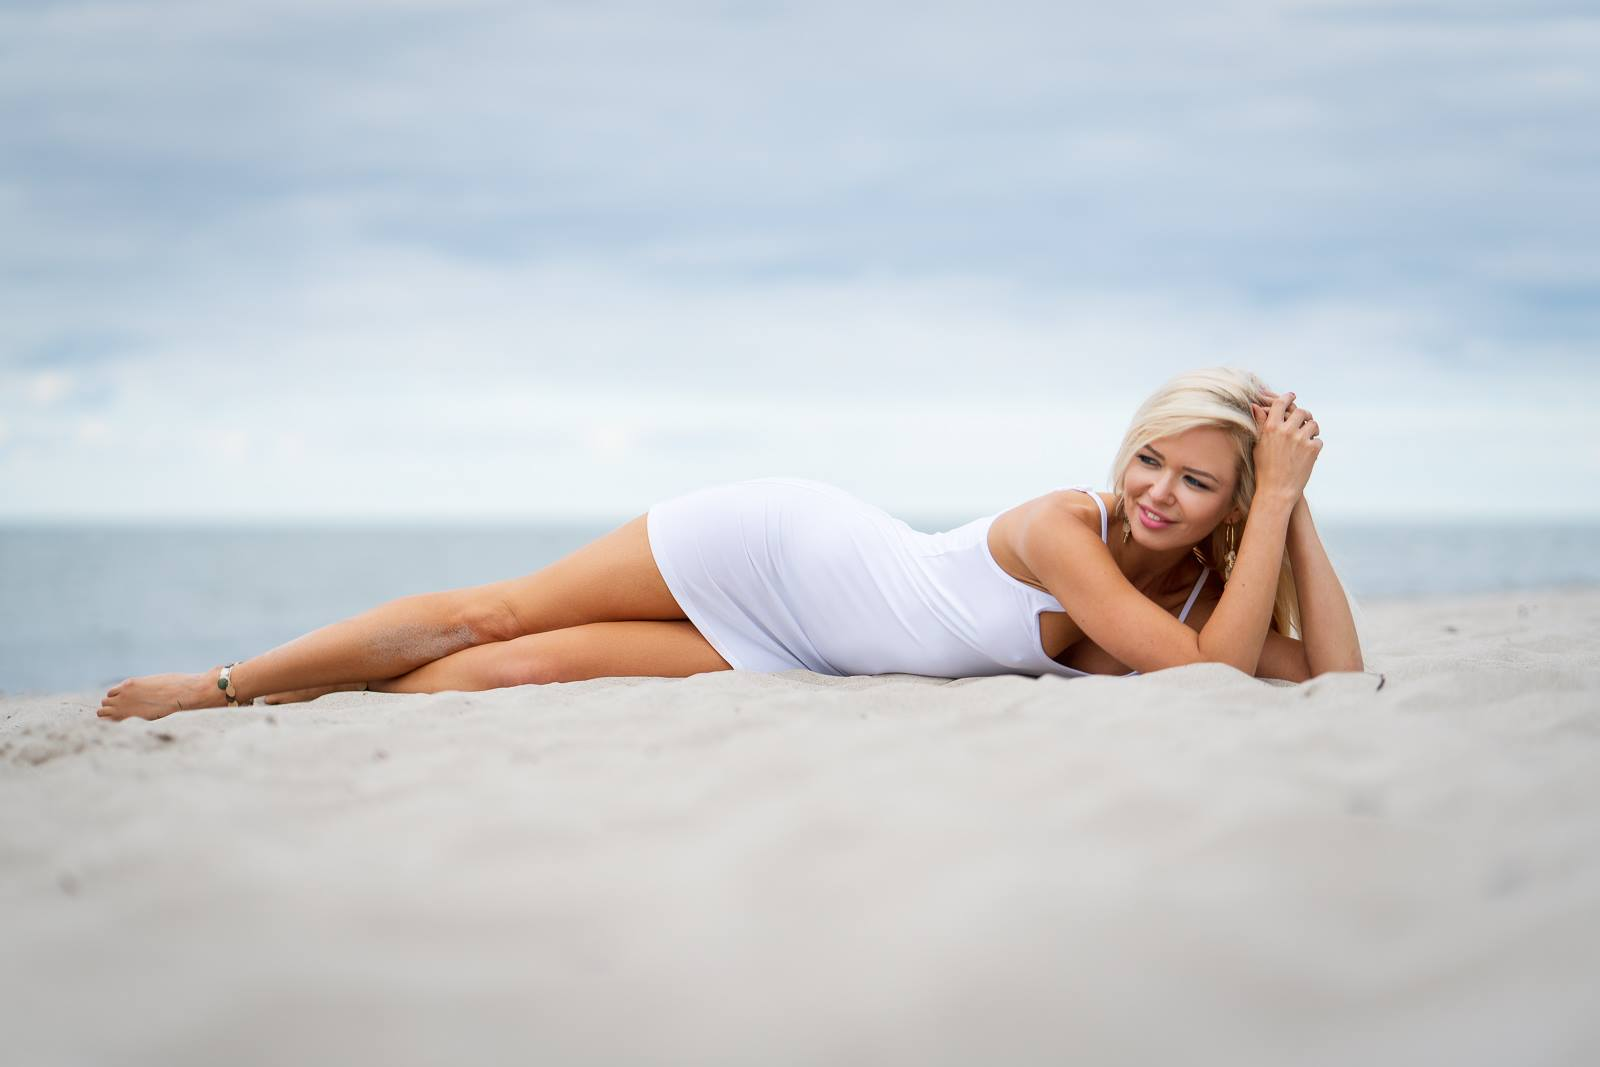 Aleksandra Model aus Hamburg am Strand